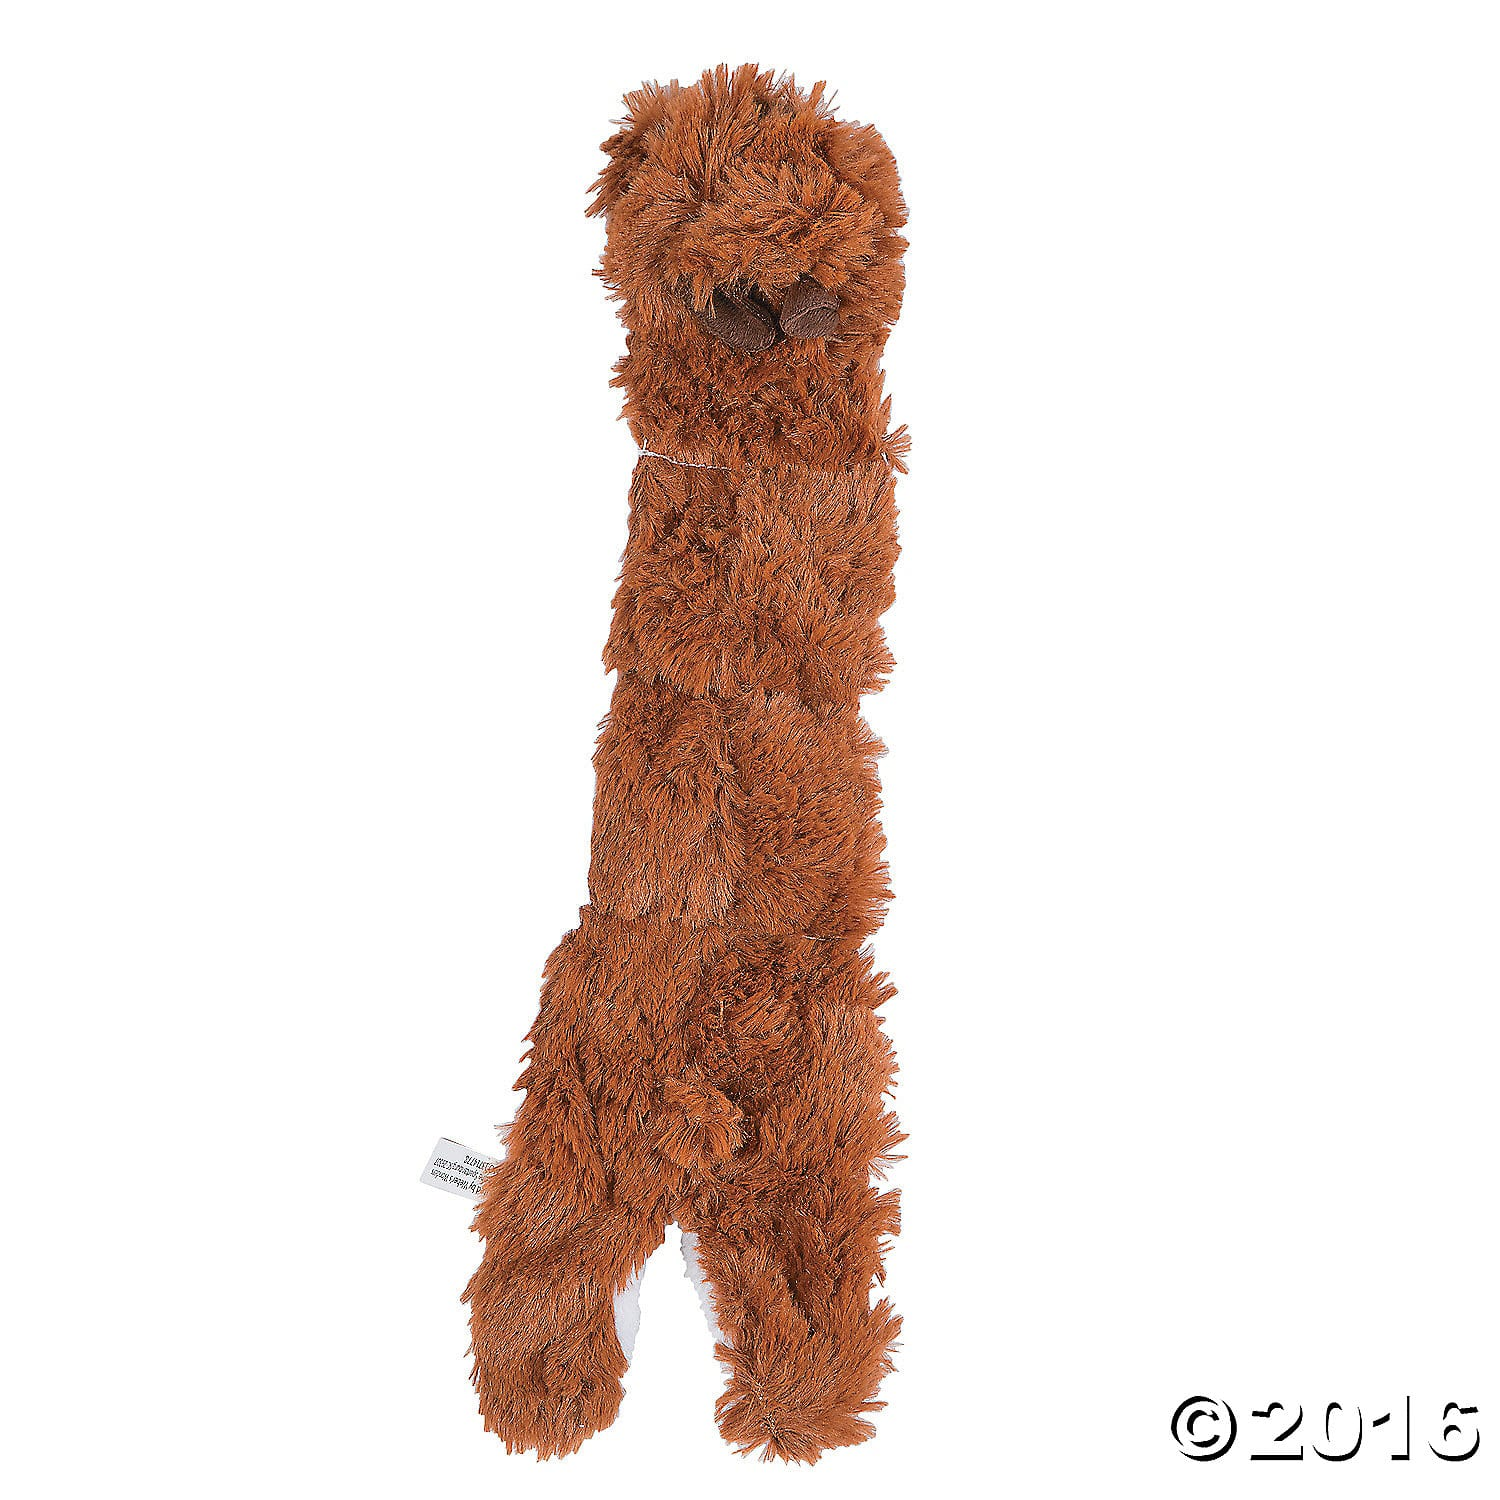 Plush Dog Toys (various)  from $1.90 + Free Shipping